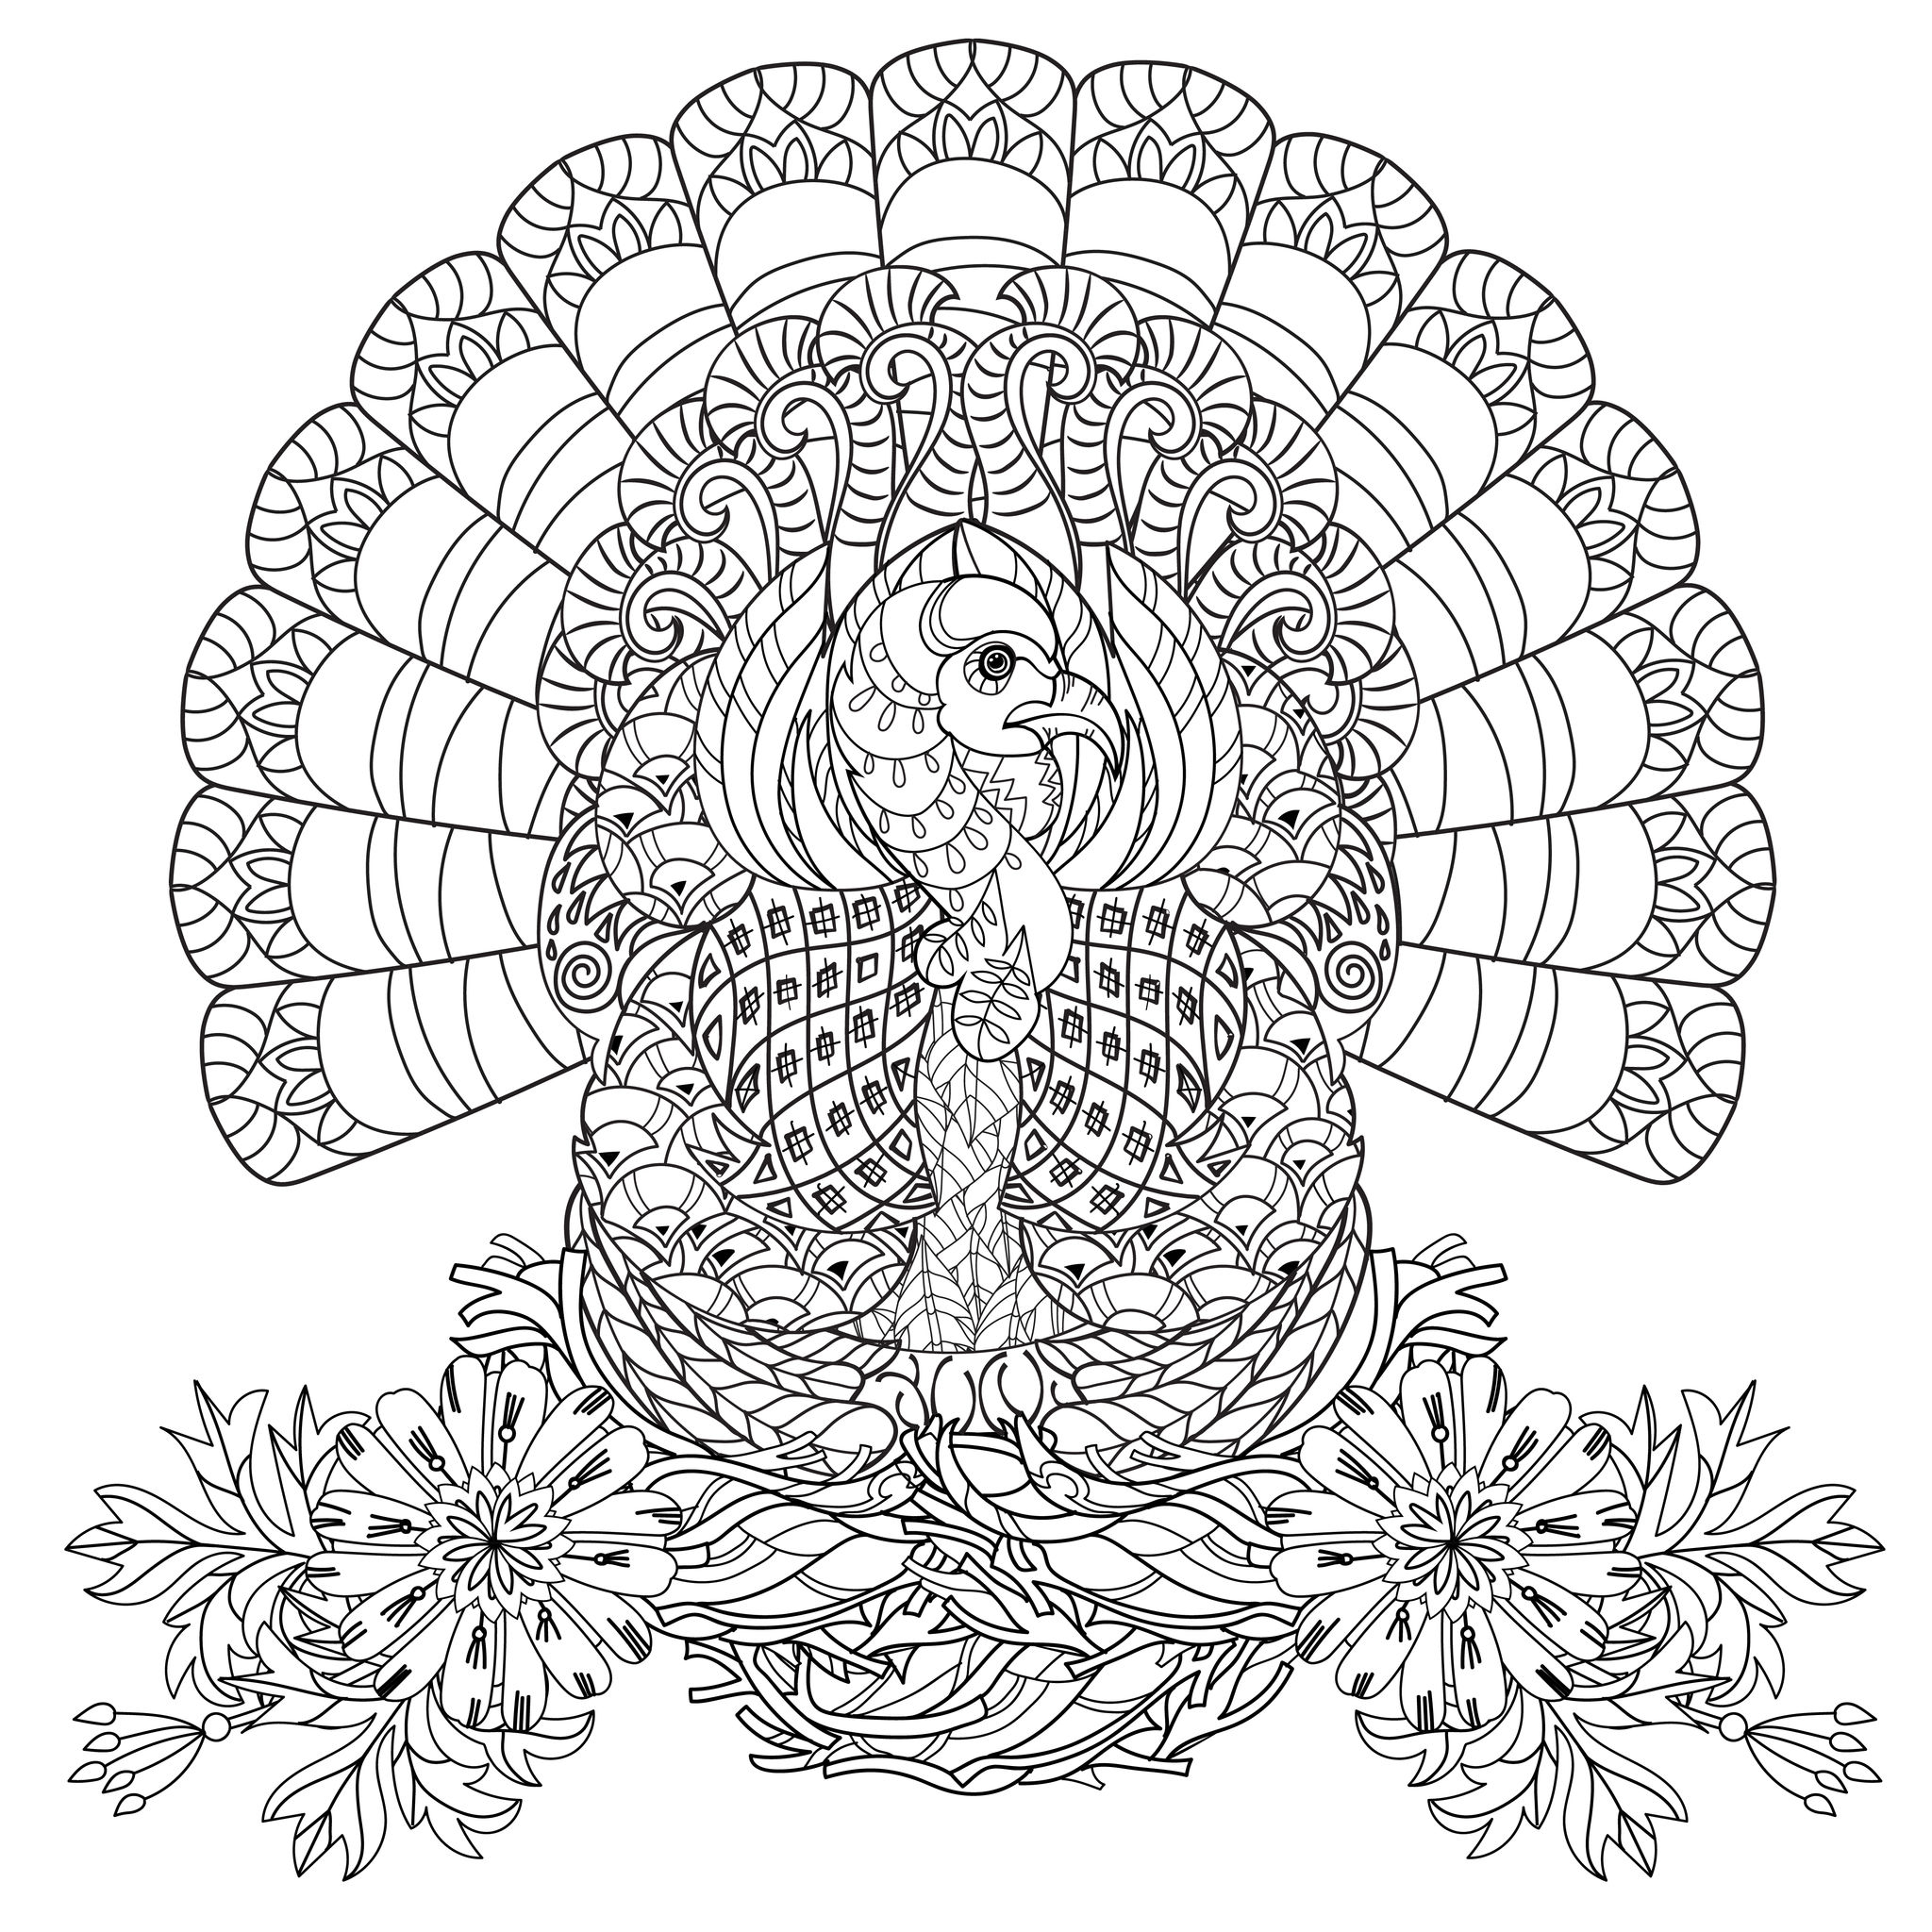 Thanksgiving - Coloring pages for adults | JustColor